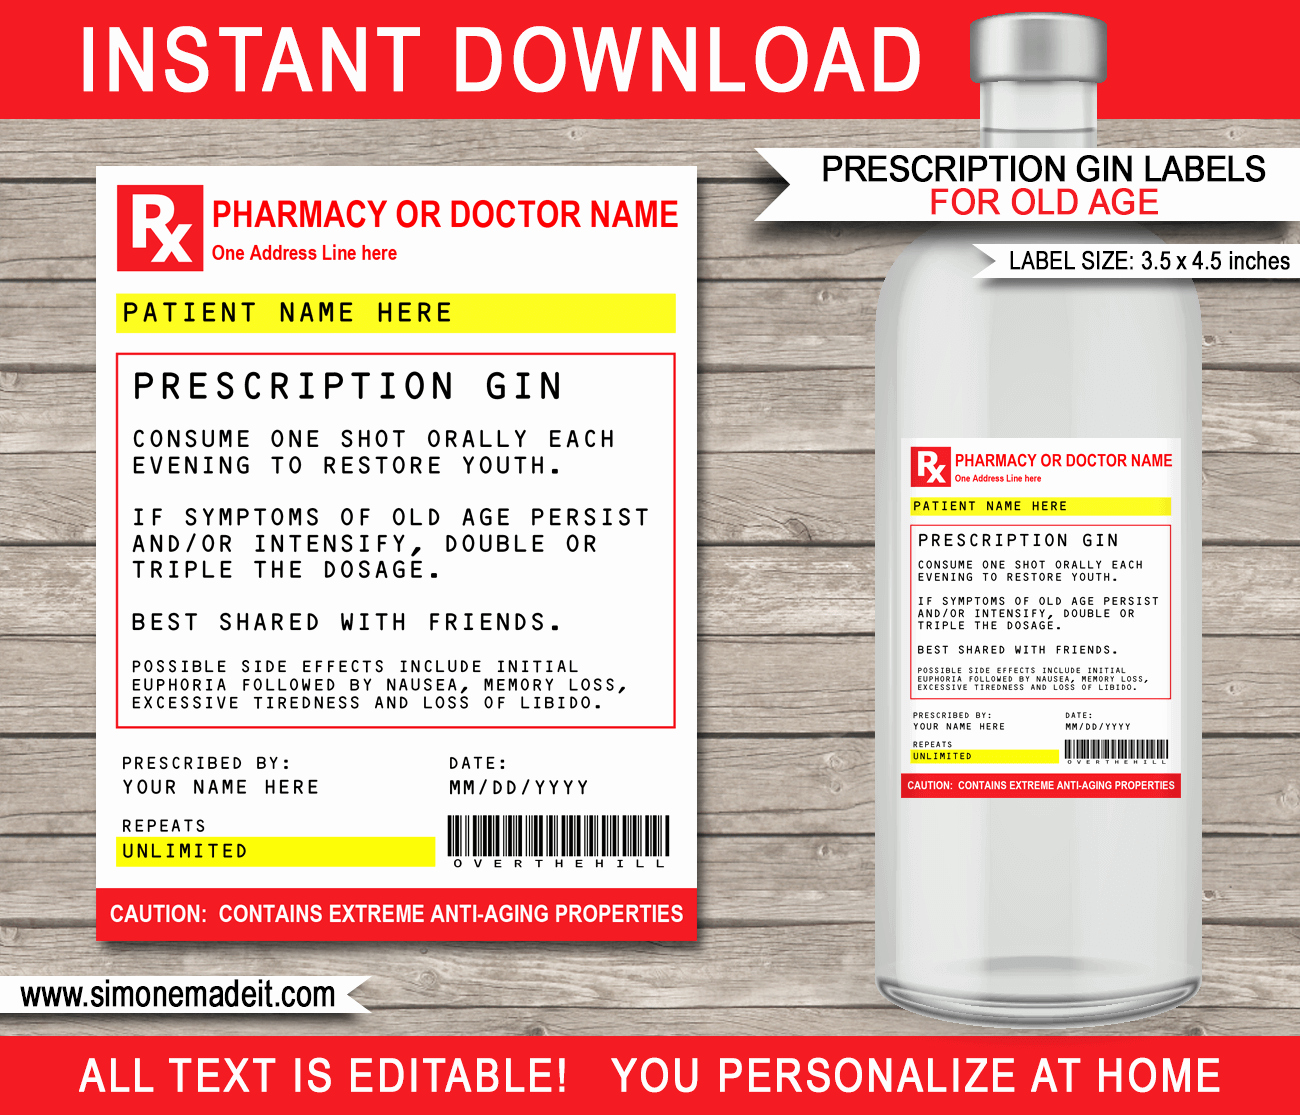 Prescription Label Template Download New Old Age Prescription Gin Labels